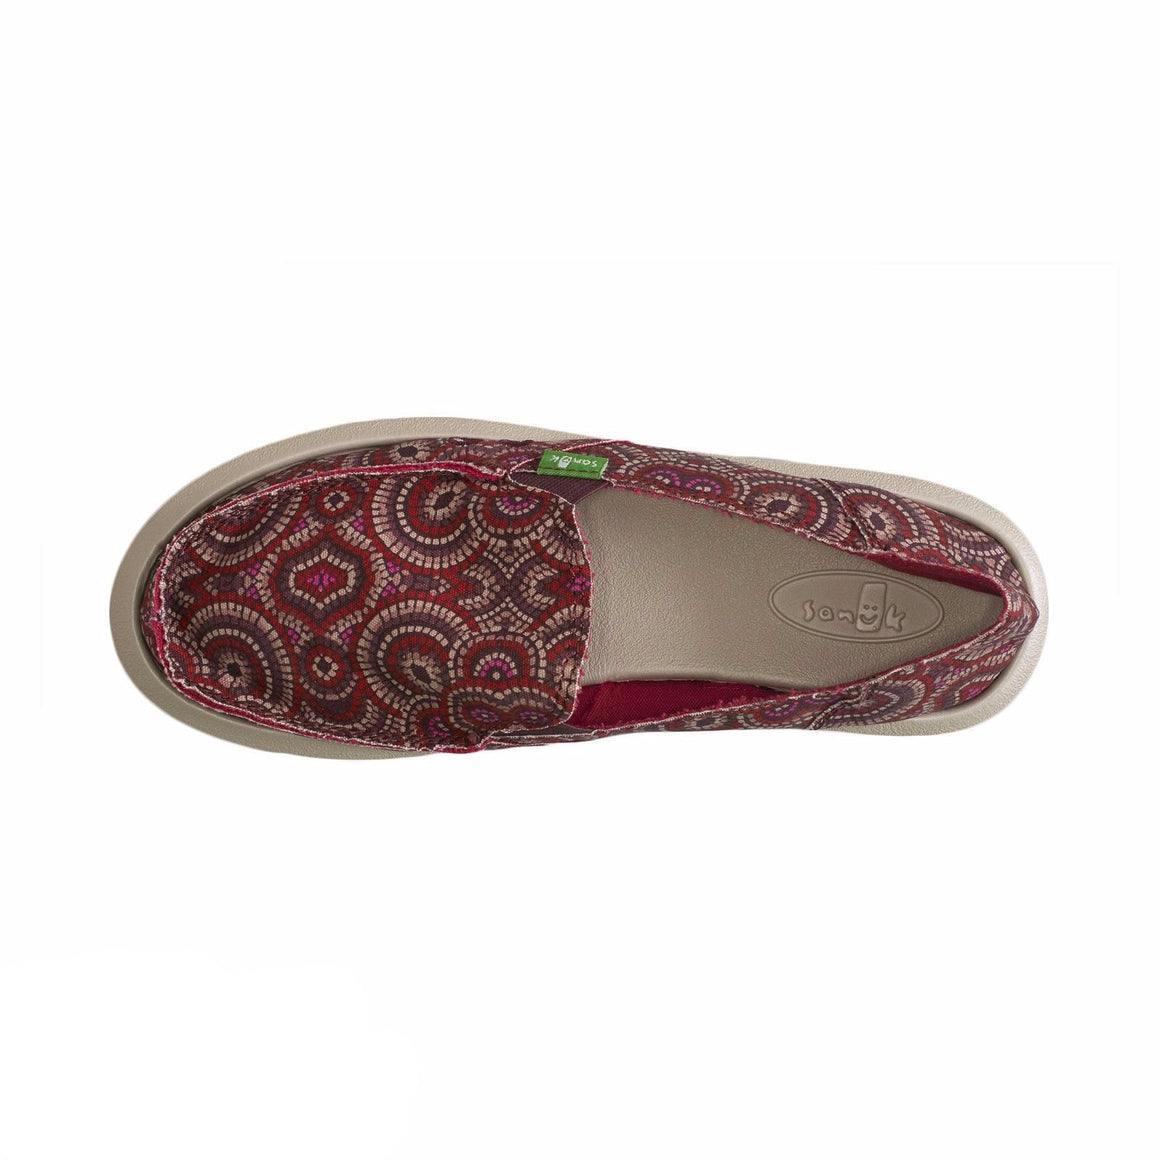 Sanuk Donna Burgundy Multi Radio Love Shoes